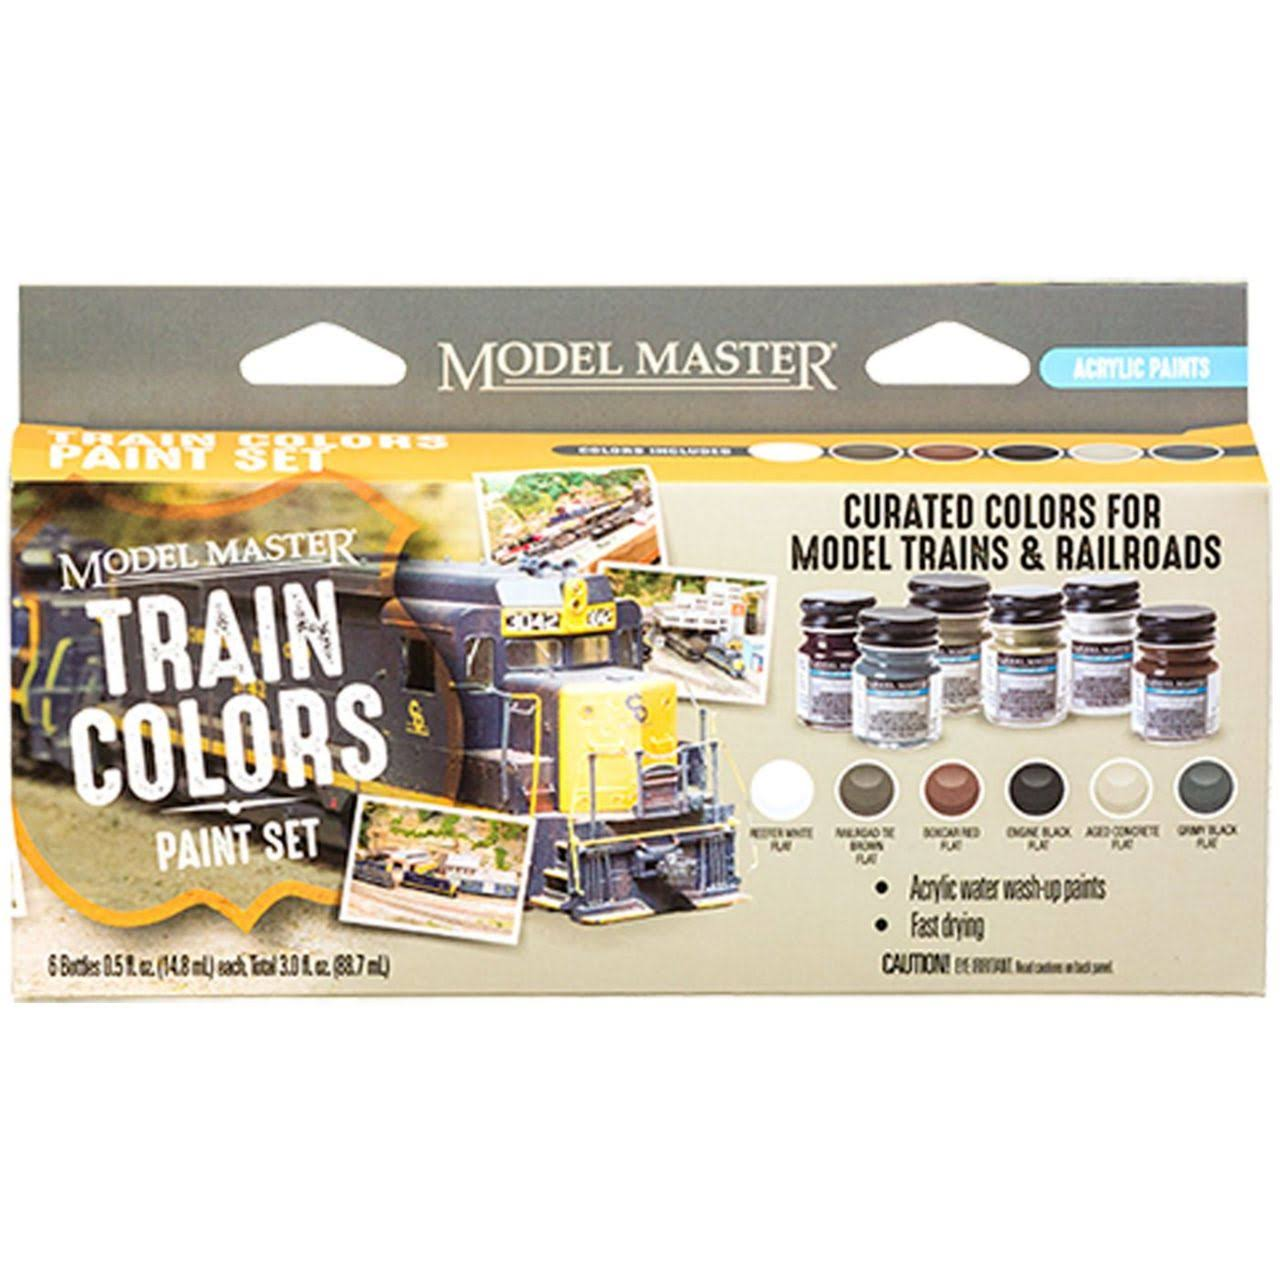 Testors 342300 Model Master Color Acrylic Paint Set, Train Colors (6)